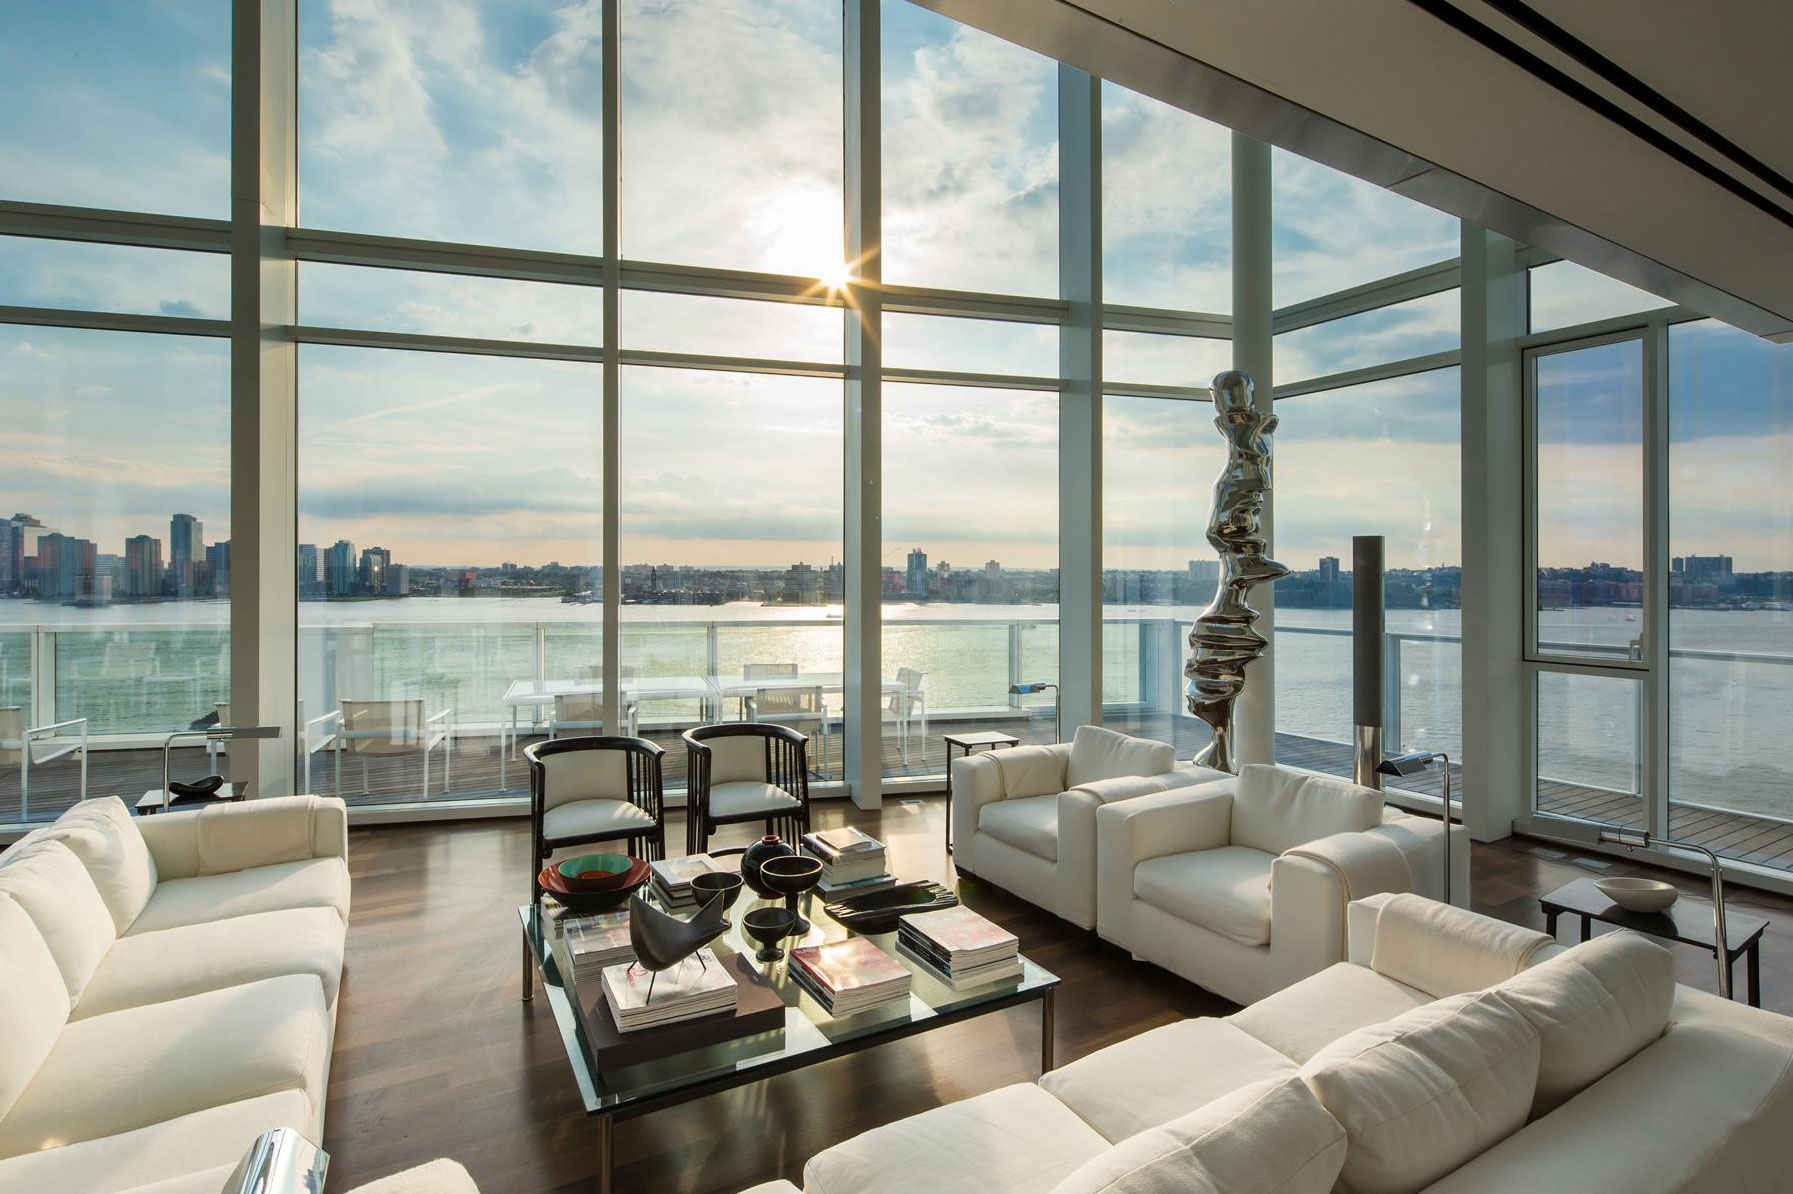 Luxurious Apartment Overlooking the Hudson River in Manhattan